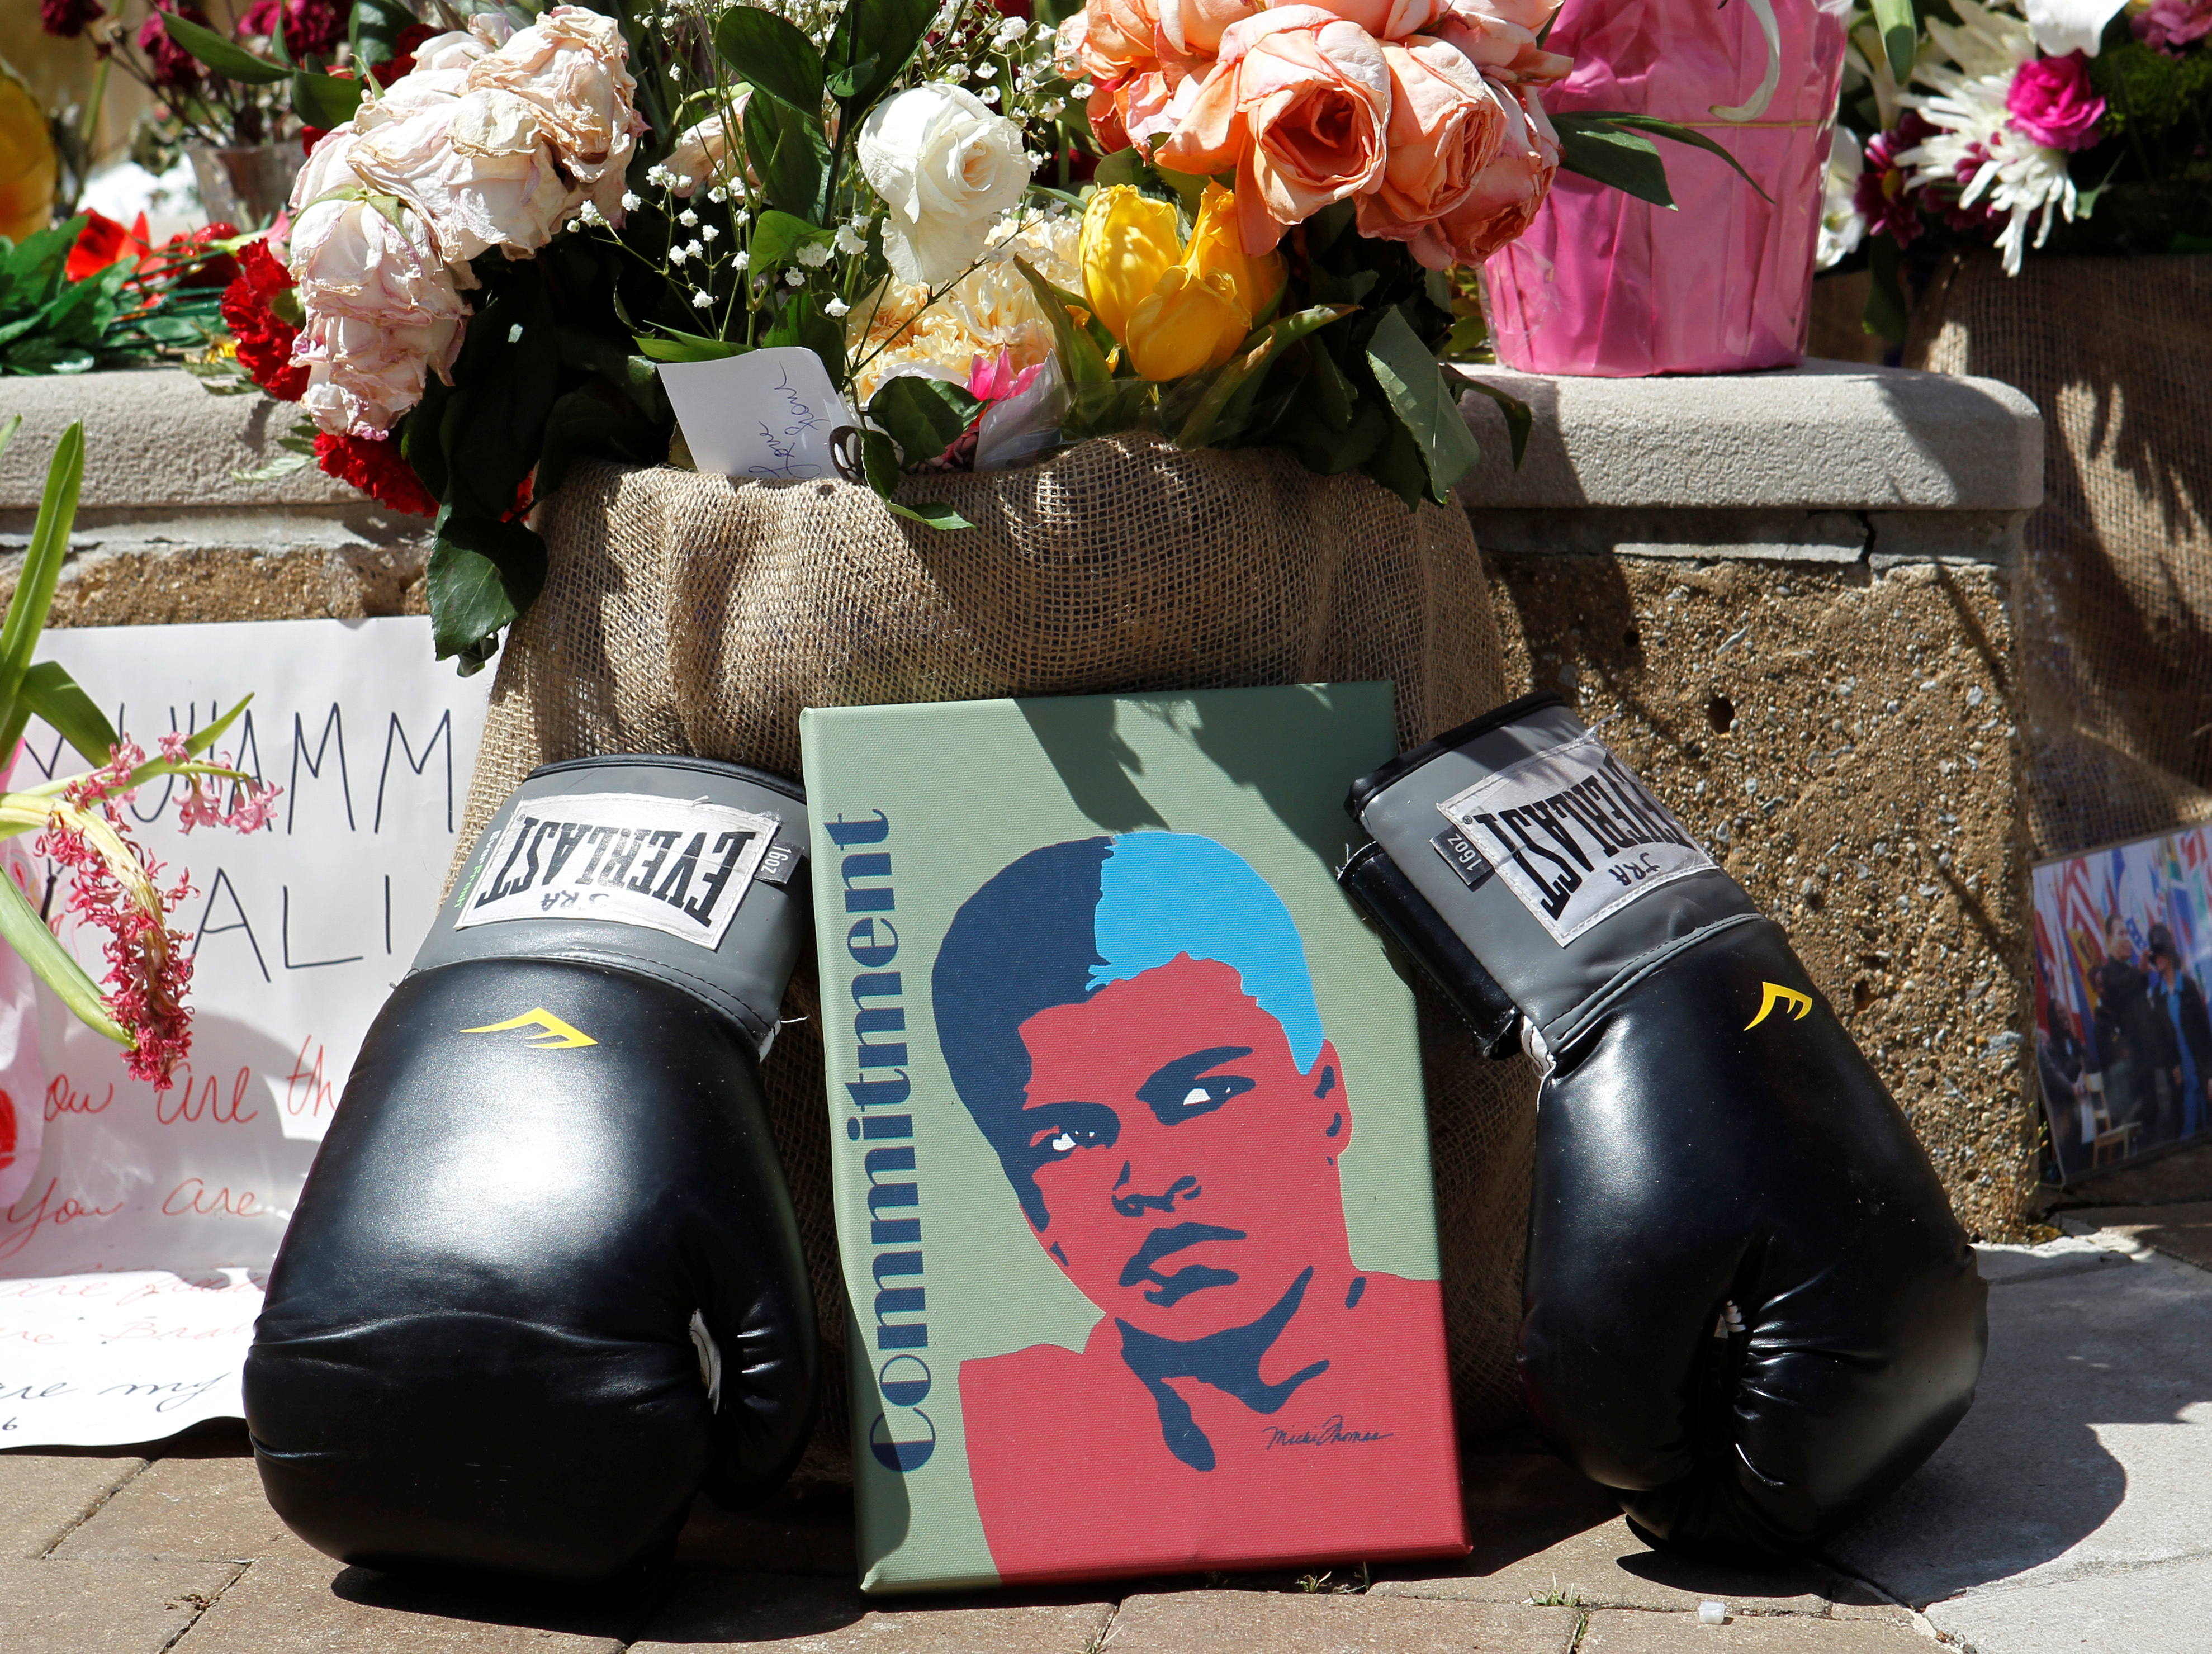 Fans of Muhammad Ali, the former world heavyweight boxing champion, leave pictures and personal mementos as they pay their respects at the Ali Center in Louisville, Kentucky, U.S. June 7, 2016.